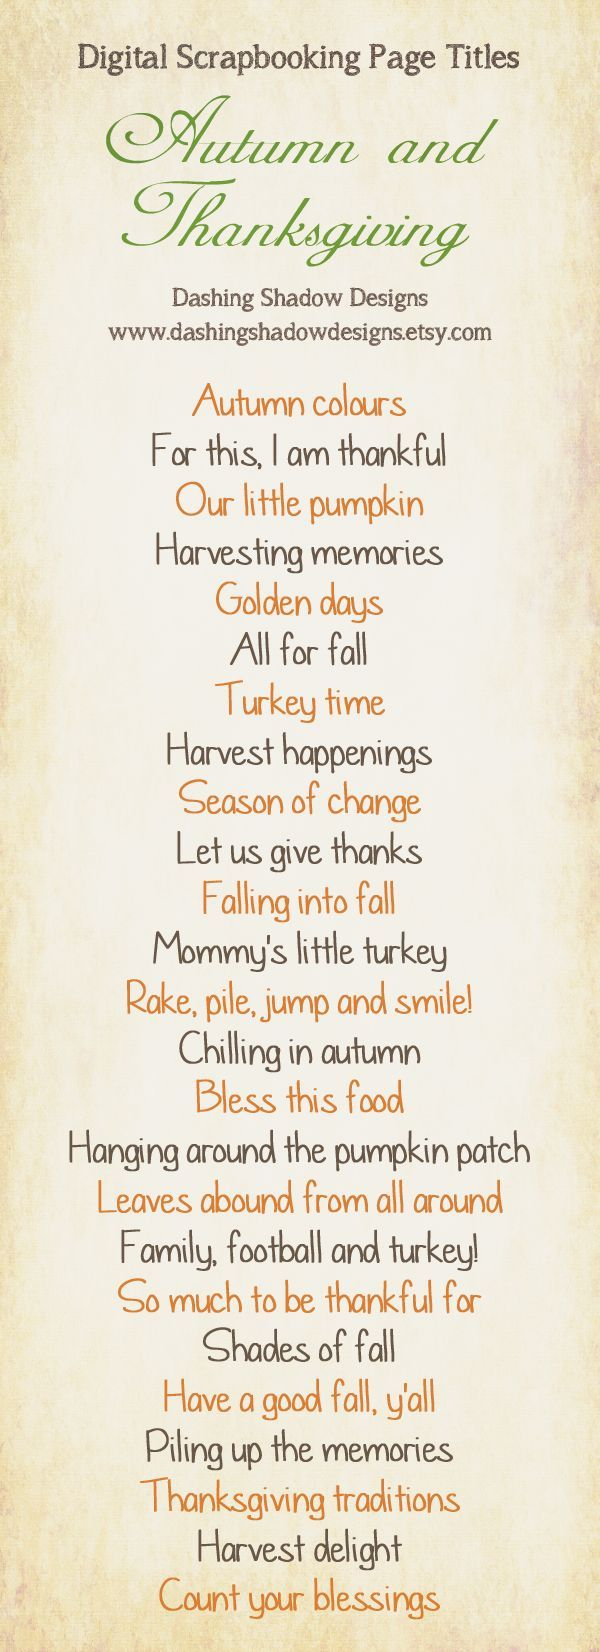 Fall and Thanksgiving Scrapbook Page Titles